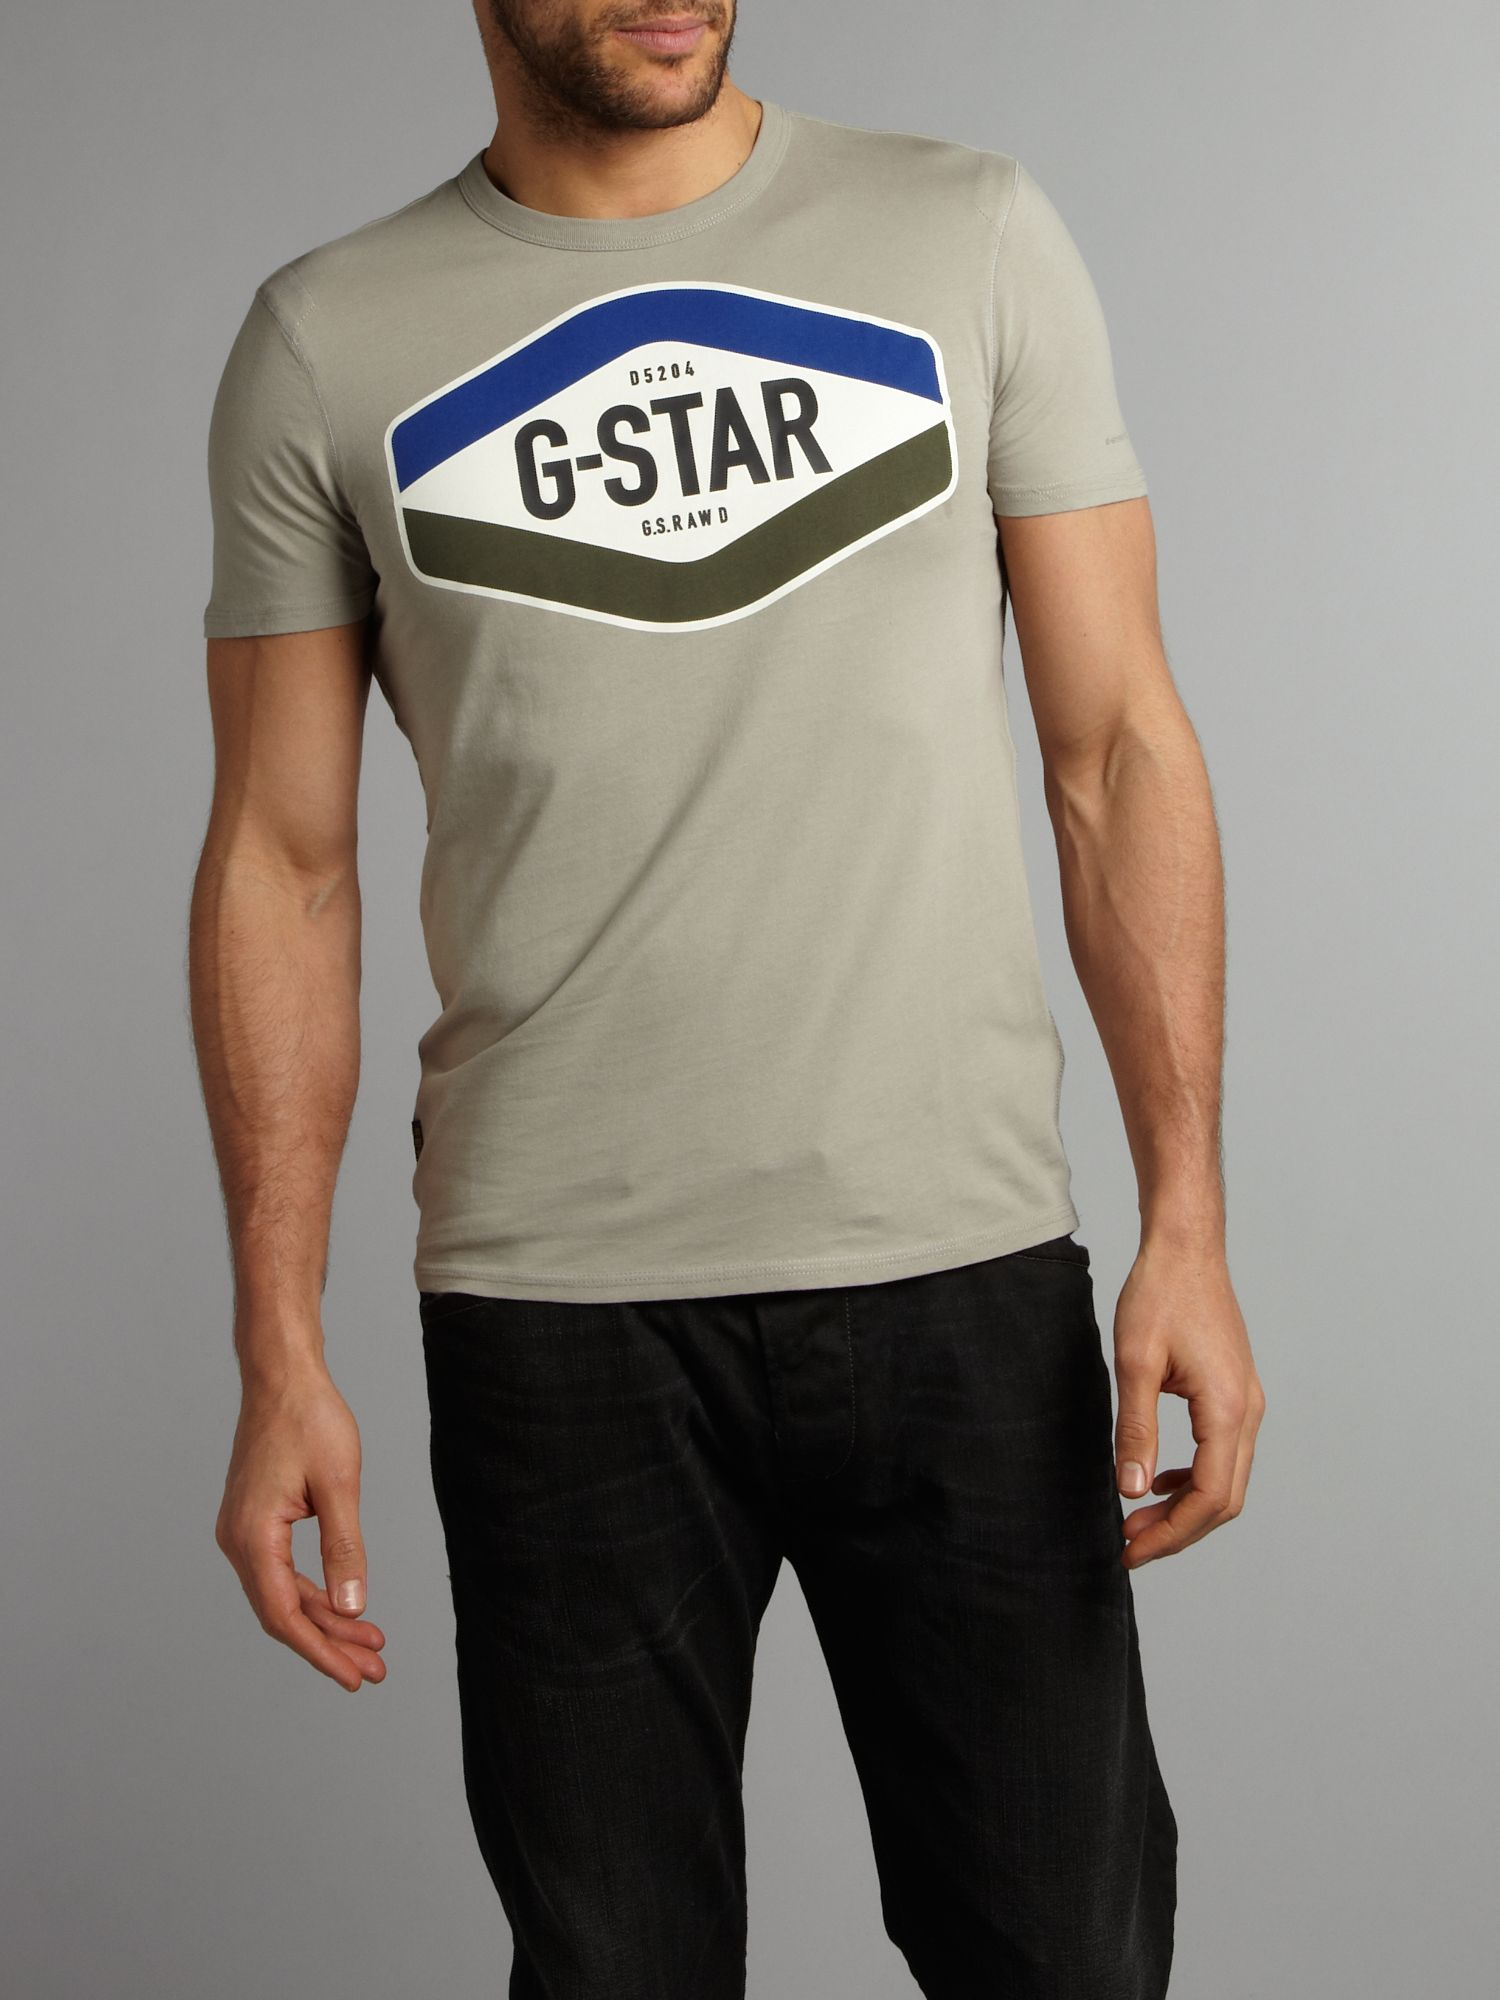 G-Star Dial logo short sleeved t-shirt - Blue product image